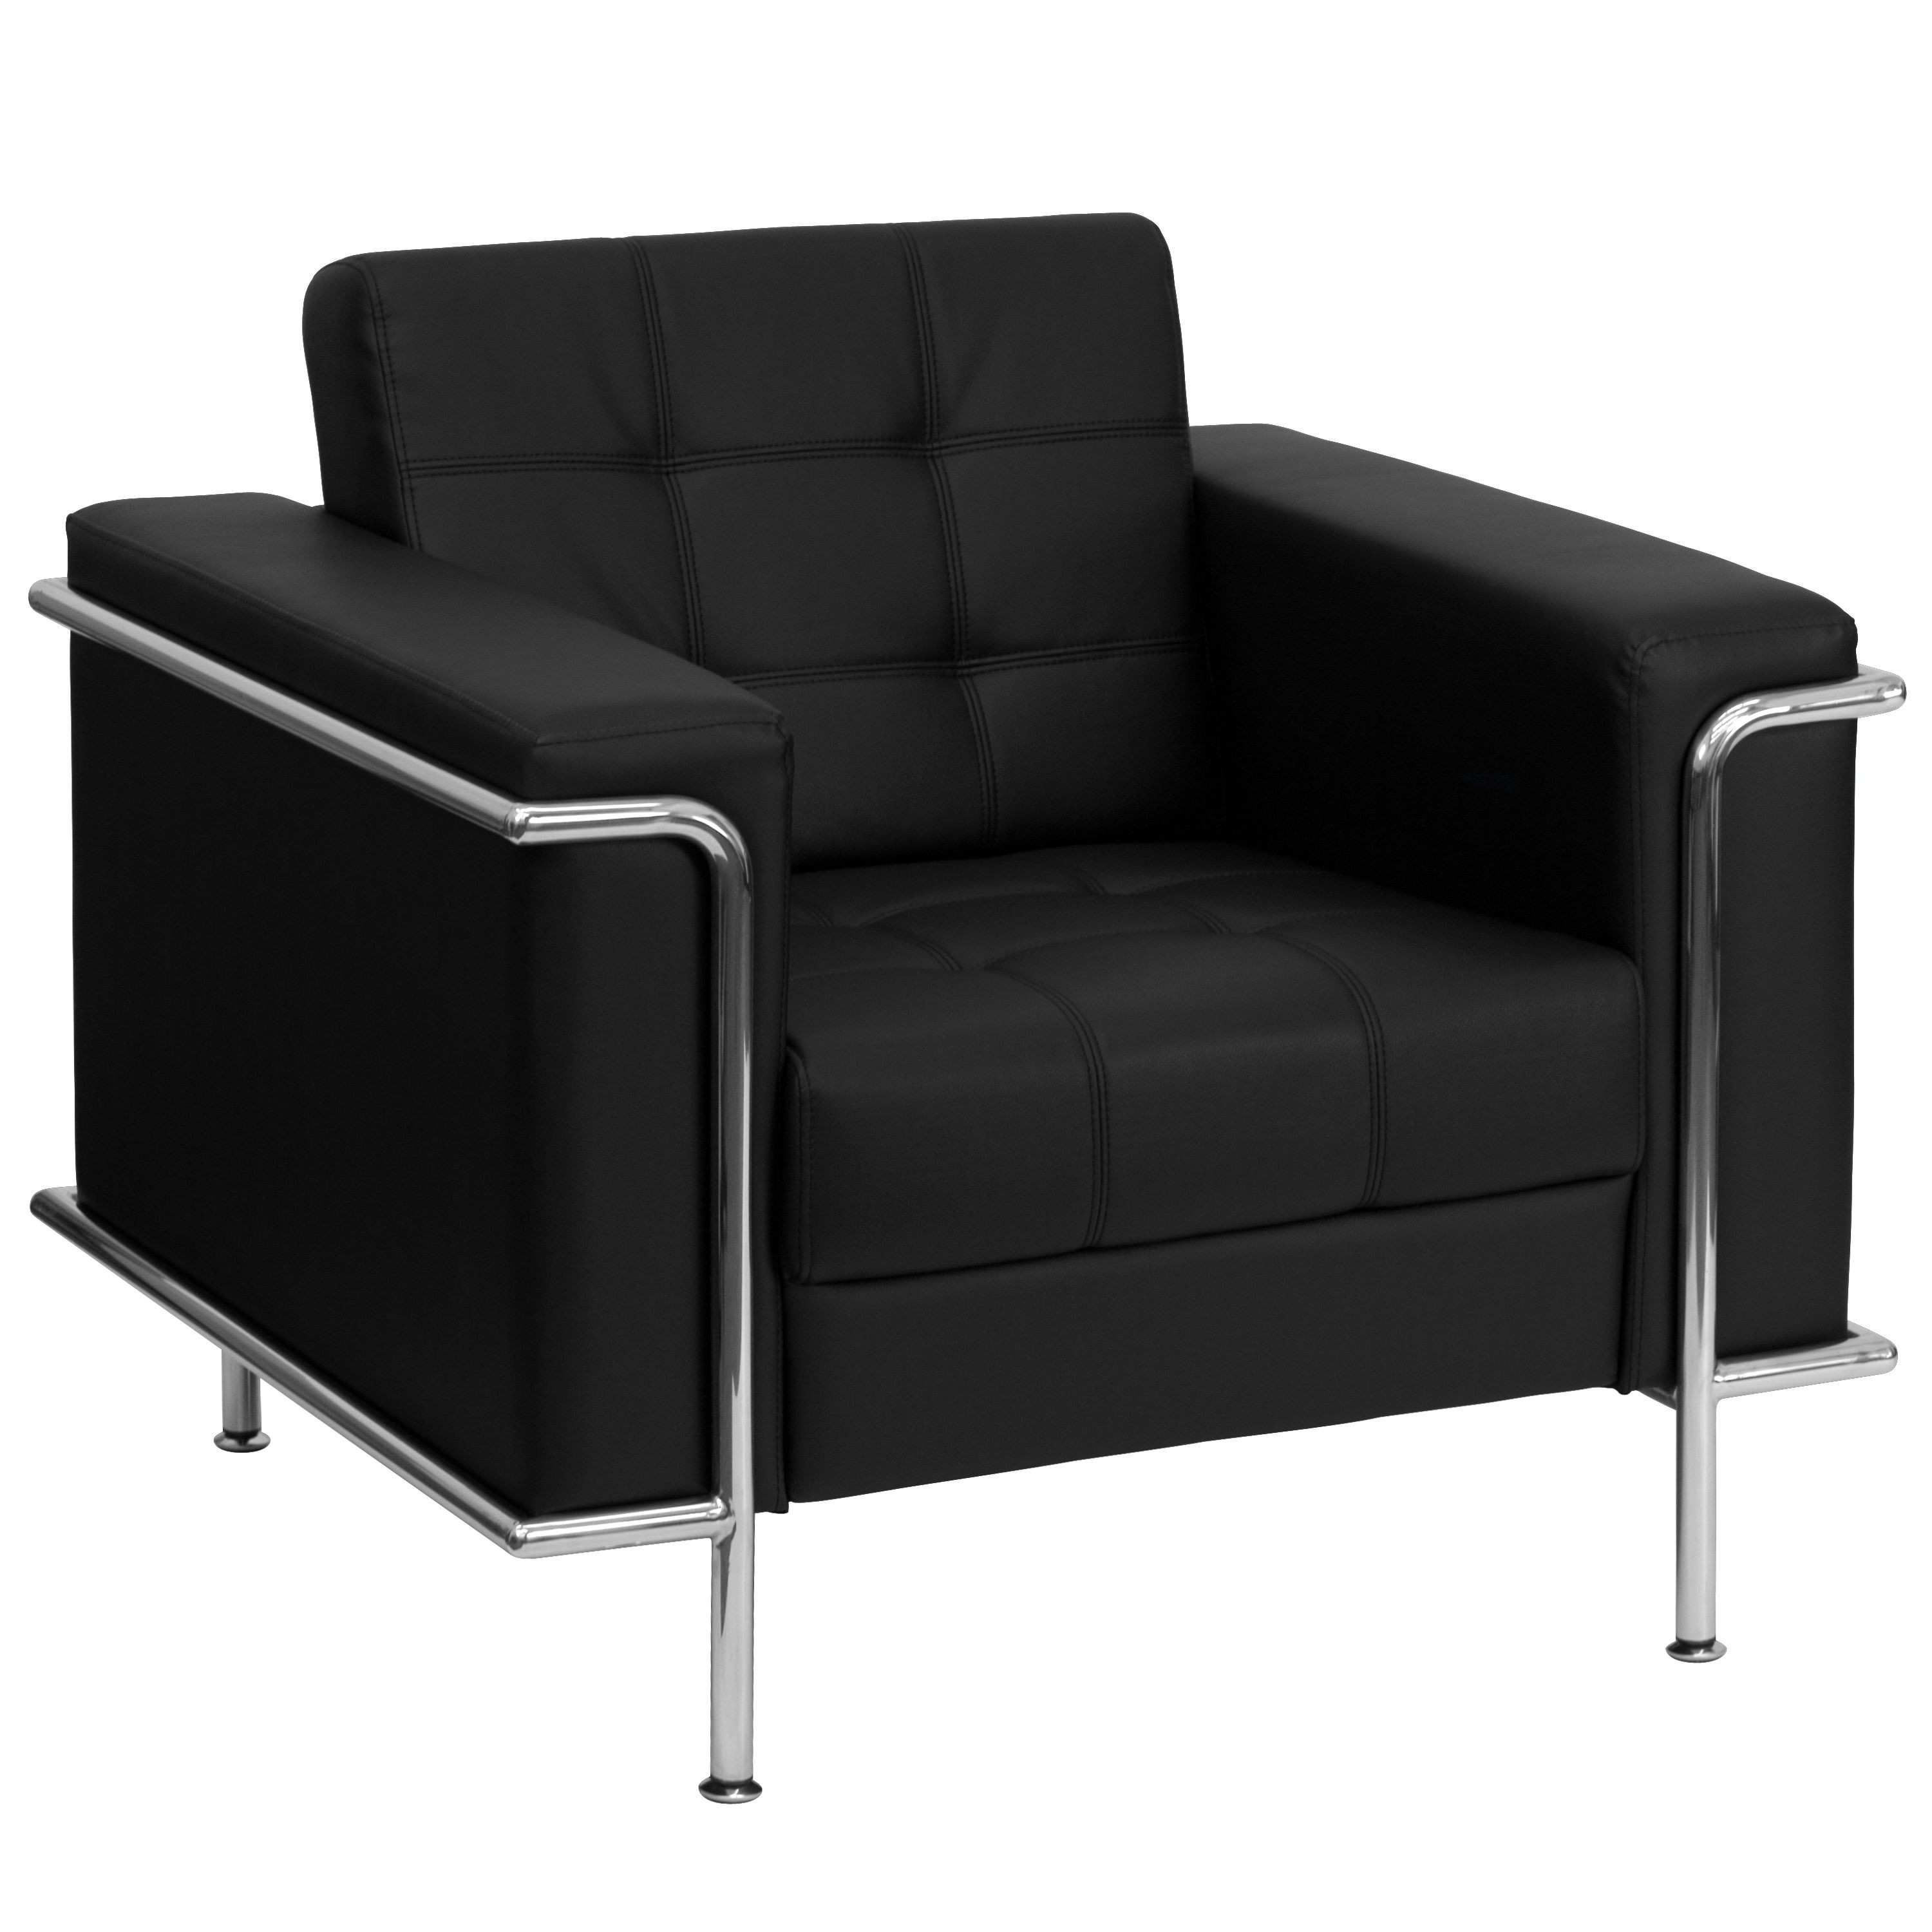 Flash Furniture ZB-LESLEY-8090-CHAIR-BK-GG Lesley Series Contemporary Black Leather Chair with Encasing Frame